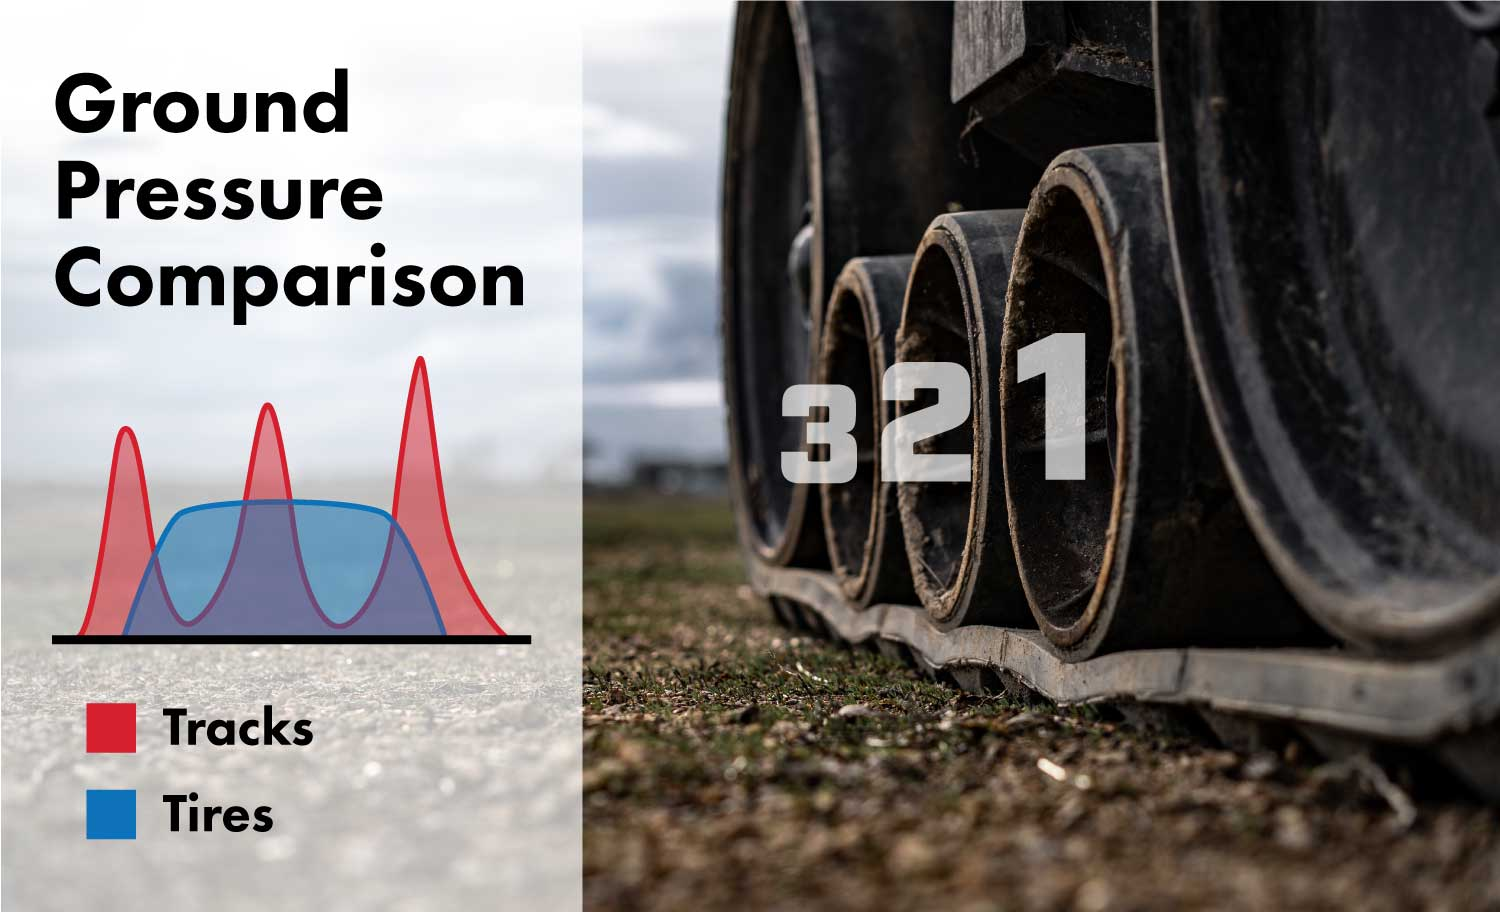 Compaction levels of a track tractor vs. a wheel tractor show pressure spikes under the track's midrollers.